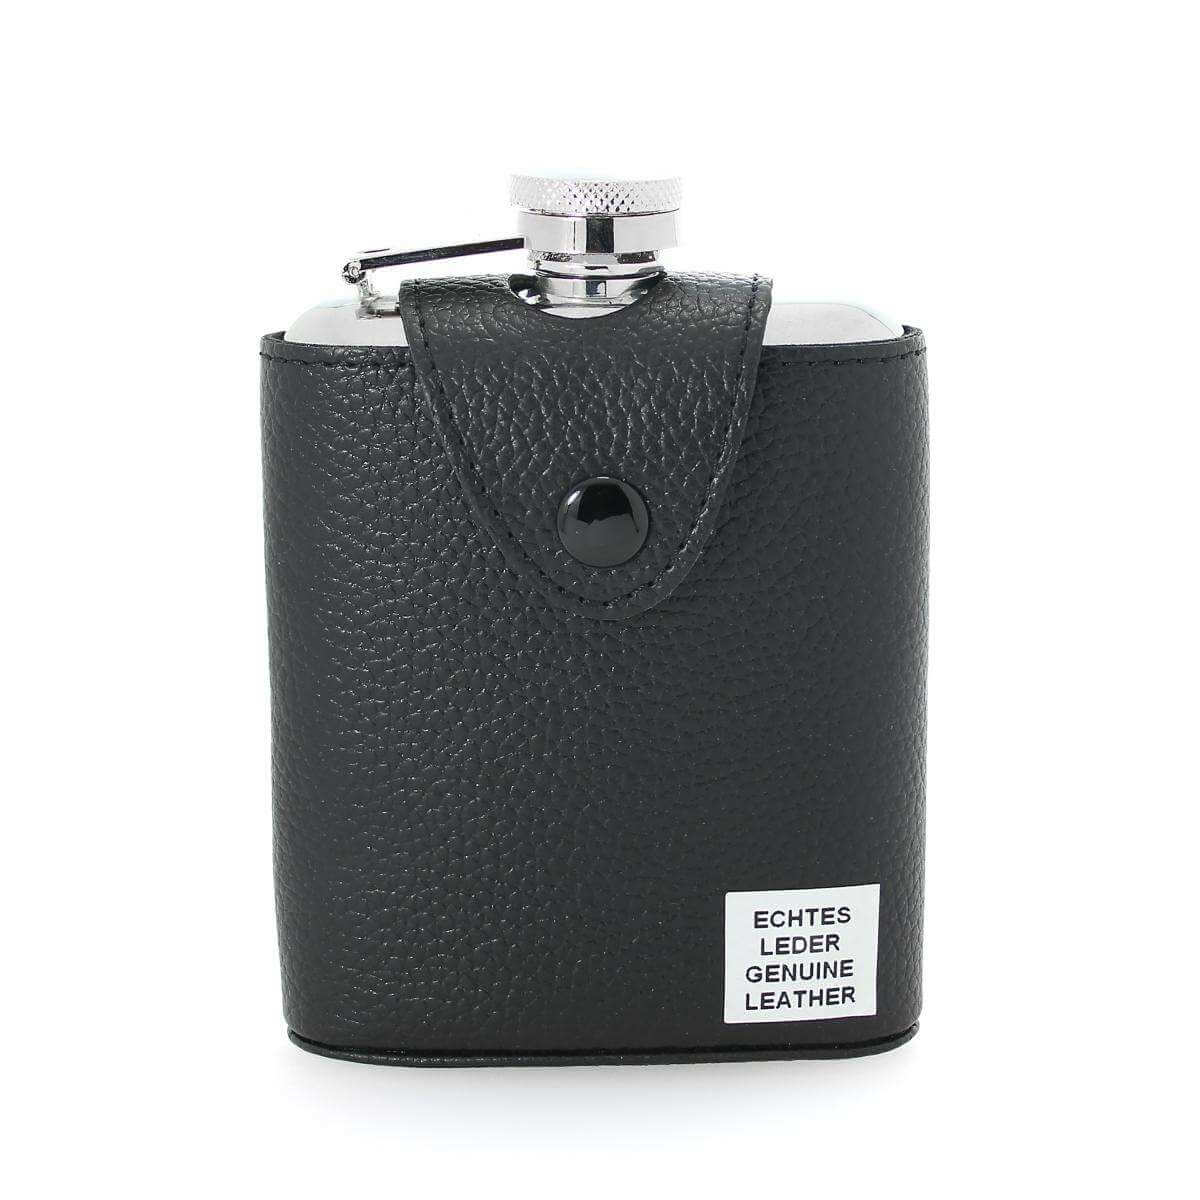 6oz Black Leather & Stainless Steel Captive Top Hip Flask w Stainless Steel Funnel